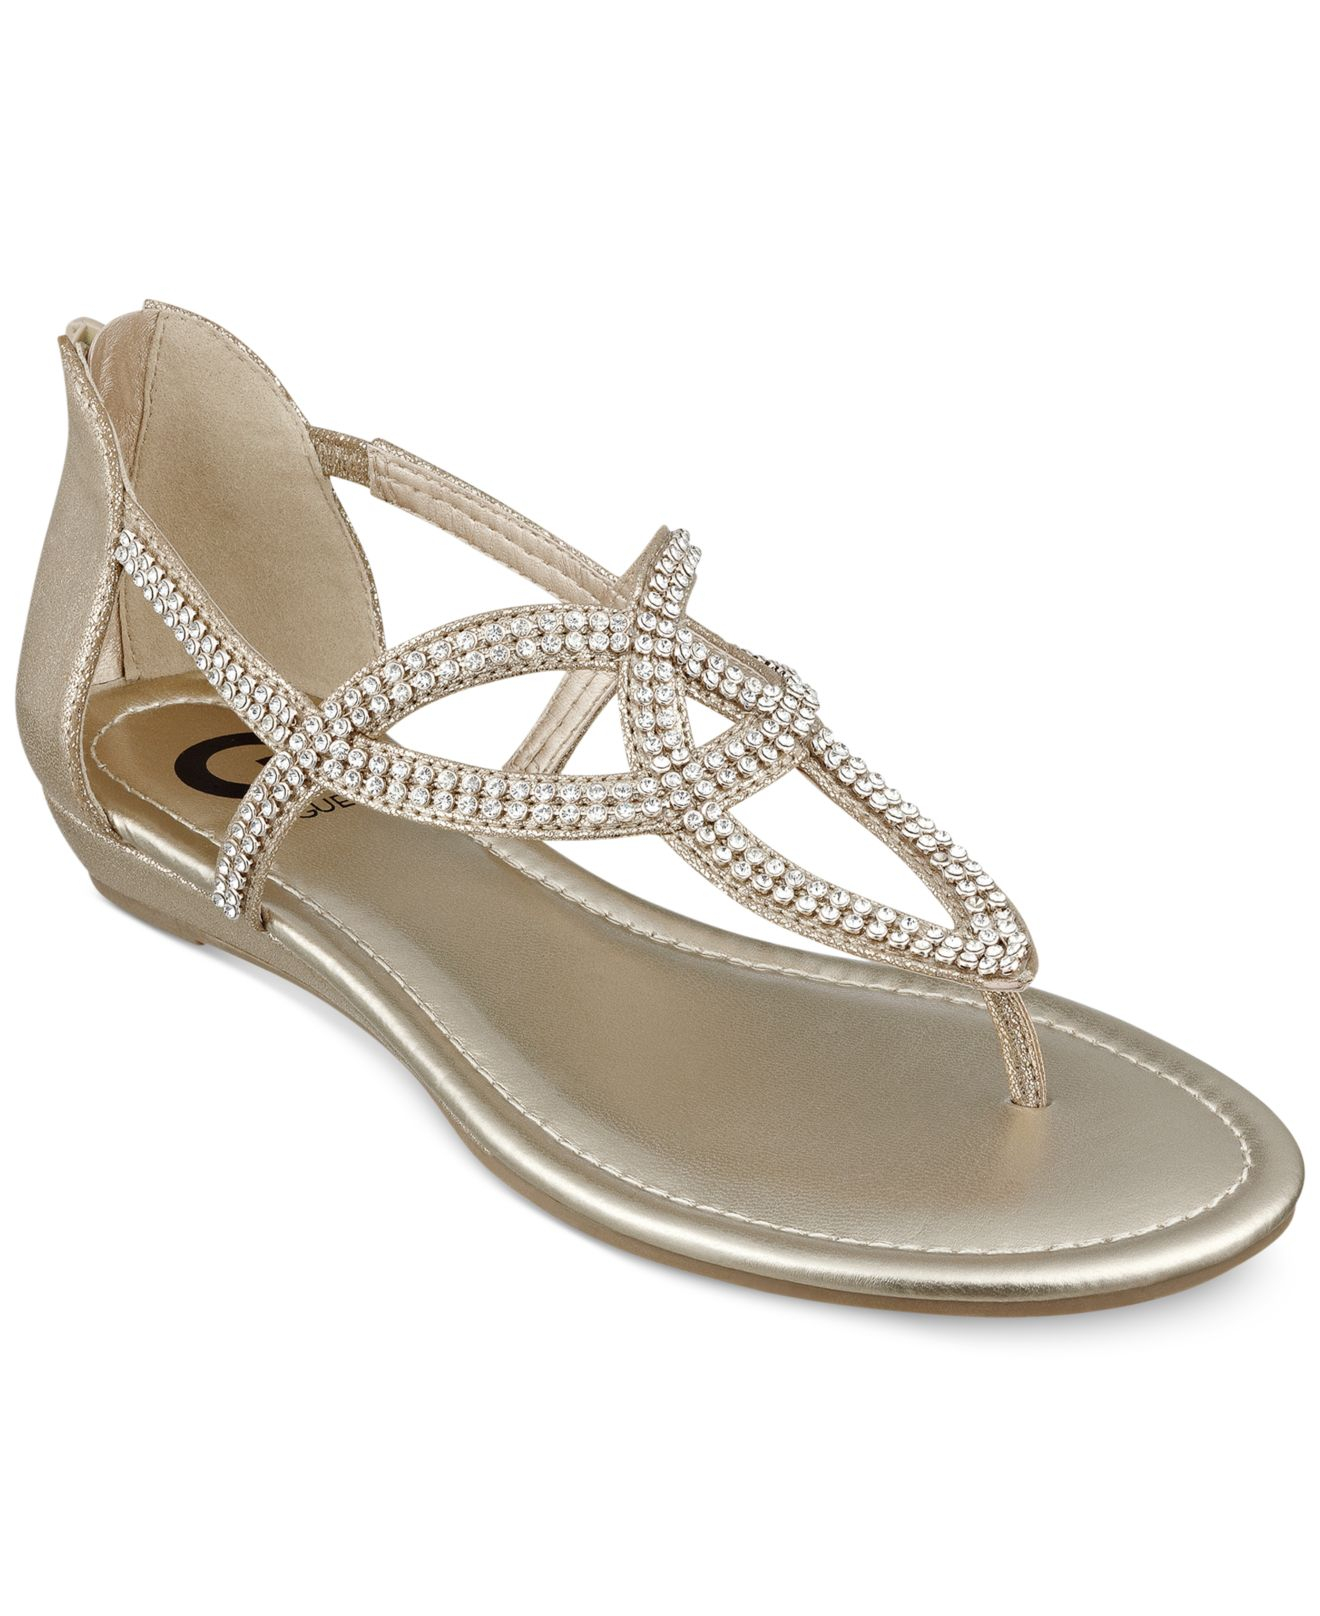 Guess Flat Shoes For Women Gold